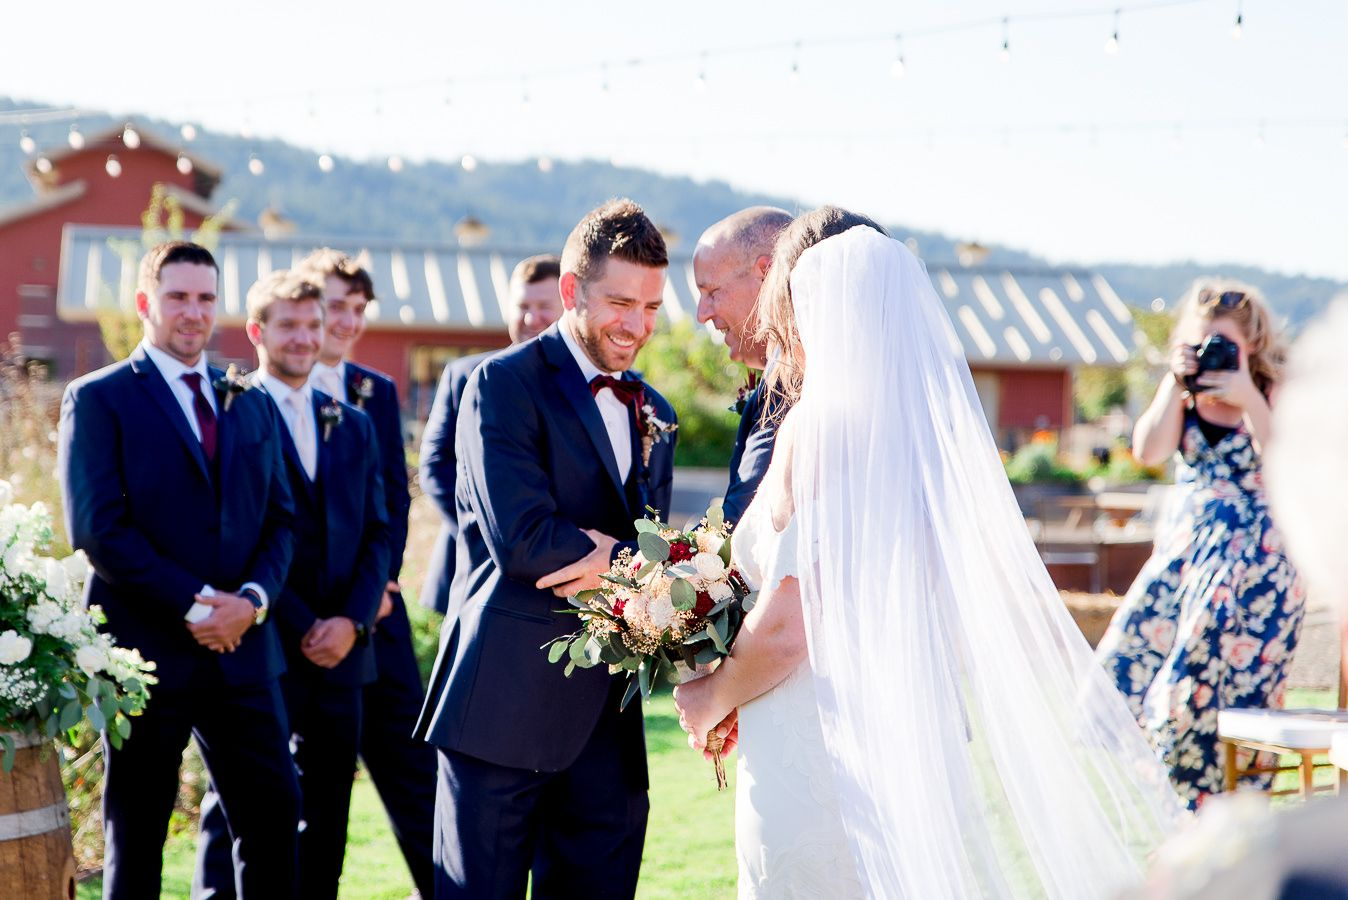 groom in navy suit shaking father of bride's hand and laughing